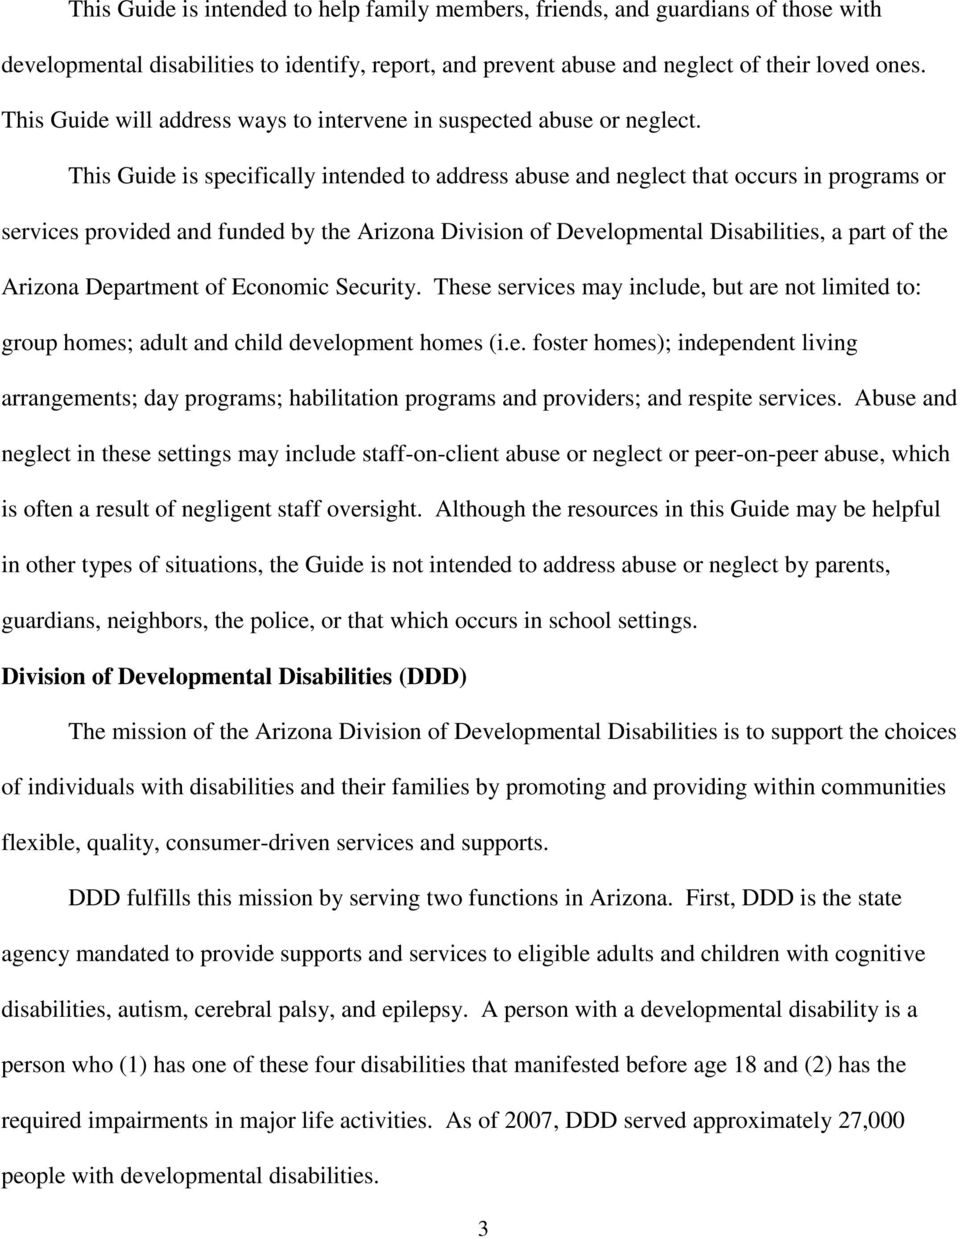 This Guide is specifically intended to address abuse and neglect that occurs in programs or services provided and funded by the Arizona Division of Developmental Disabilities, a part of the Arizona